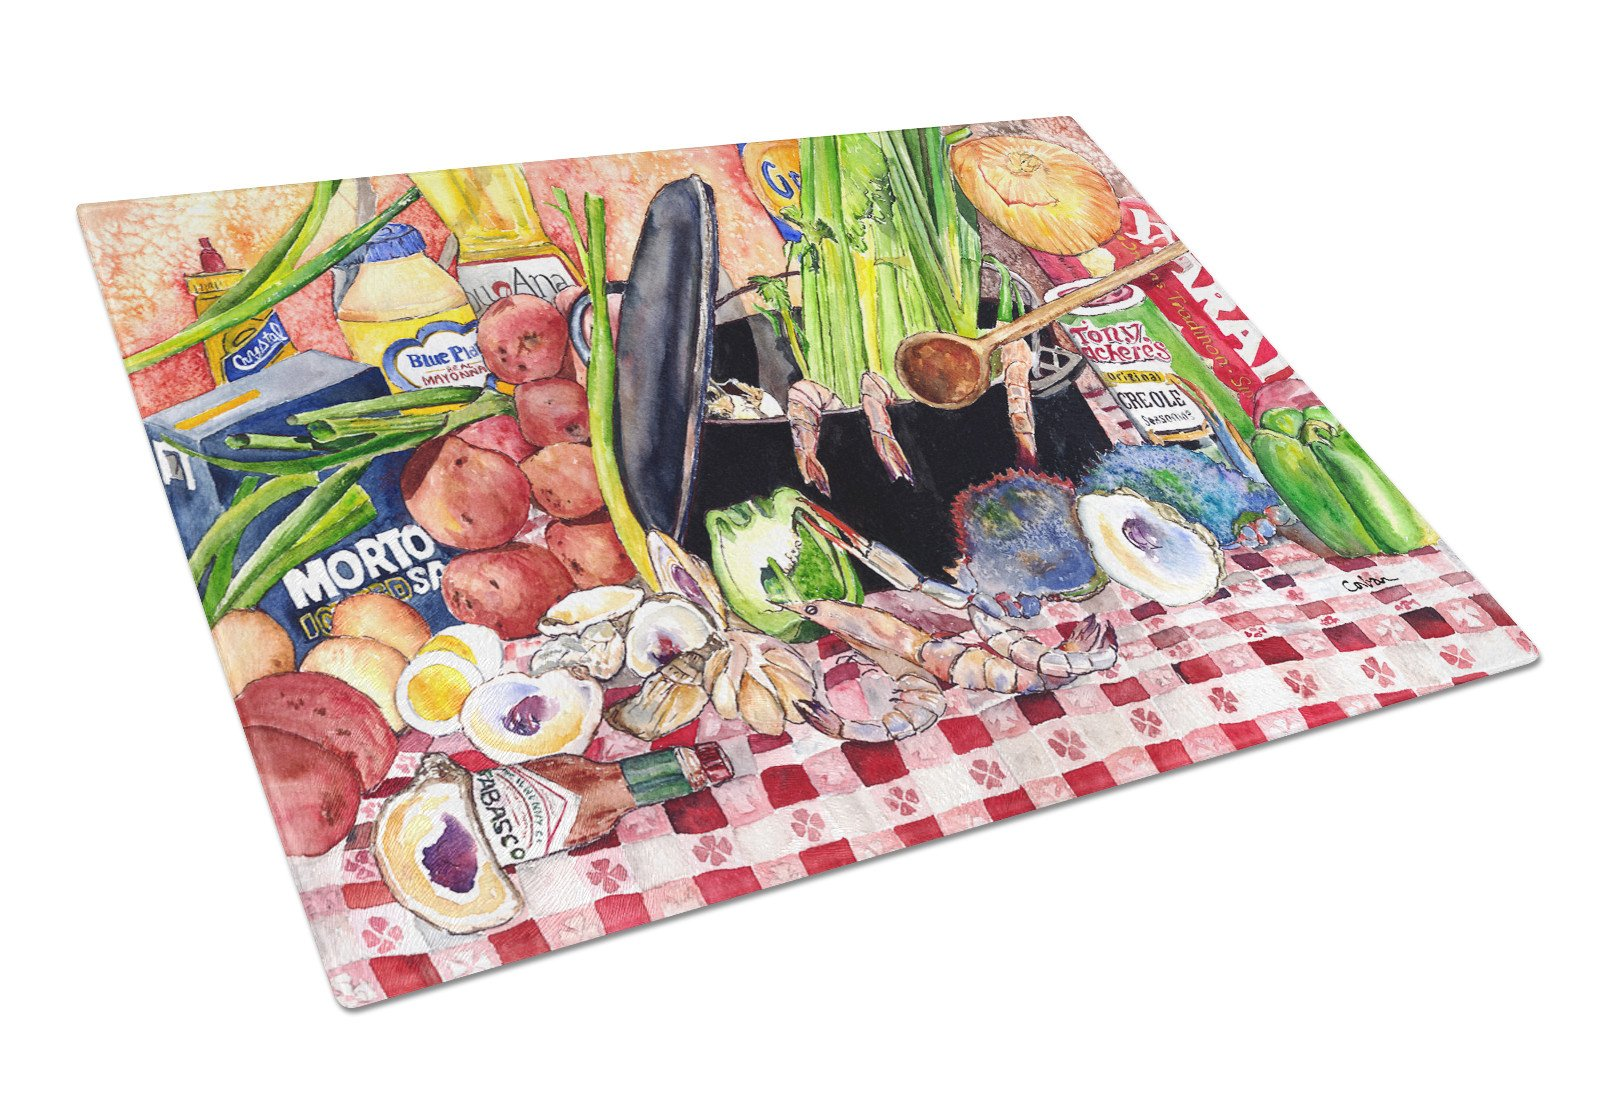 Gumbo and Potato Salad  Glass Cutting Board Large by Caroline's Treasures